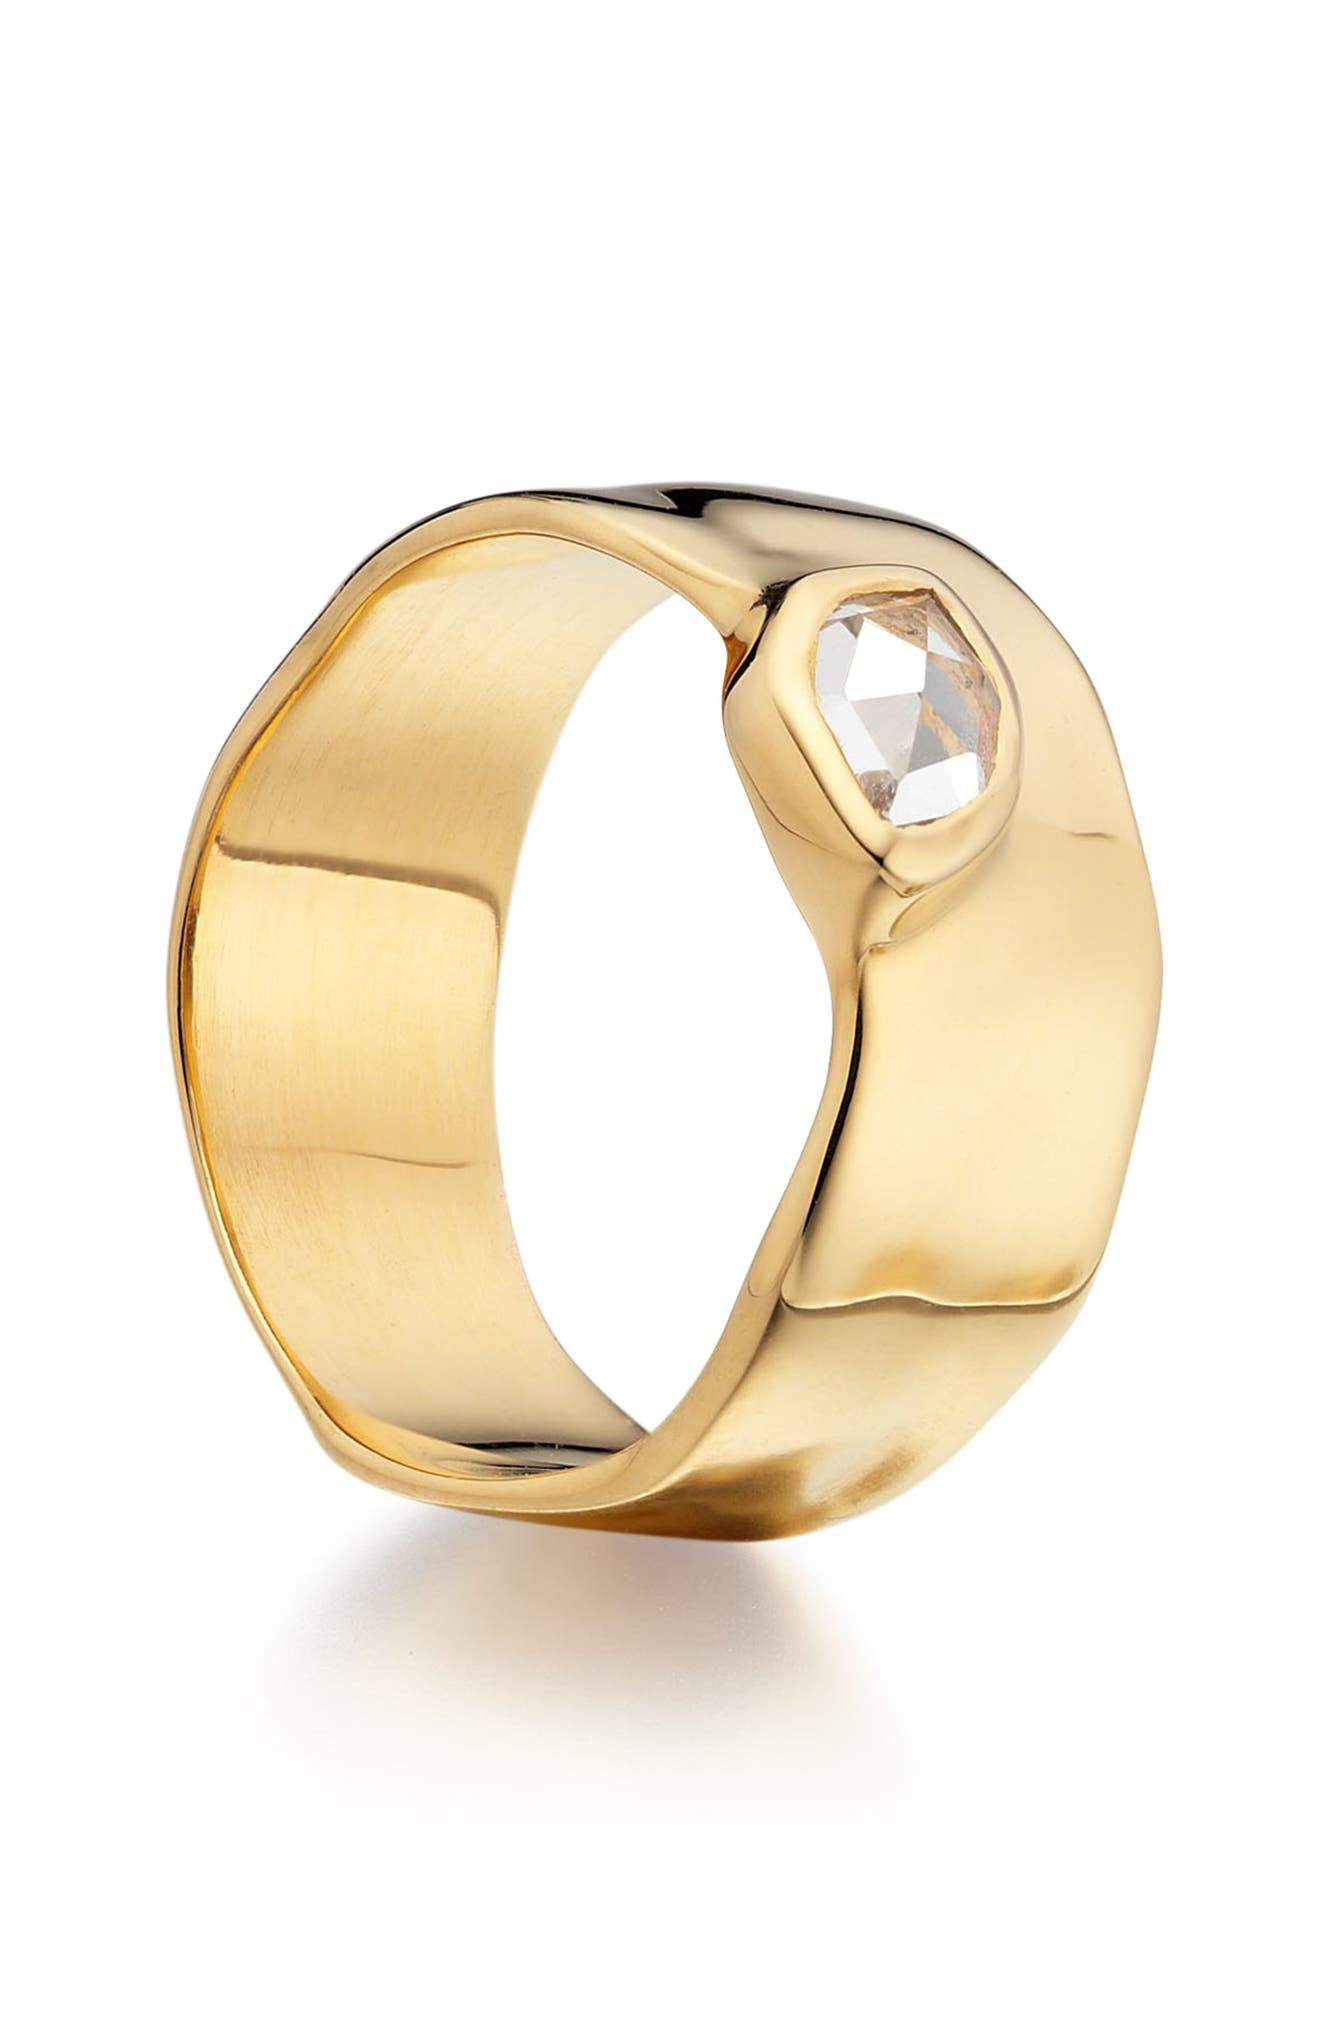 'Siren' Wide Band Ring,                             Alternate thumbnail 3, color,                             White Topaz/ Yellow Gold